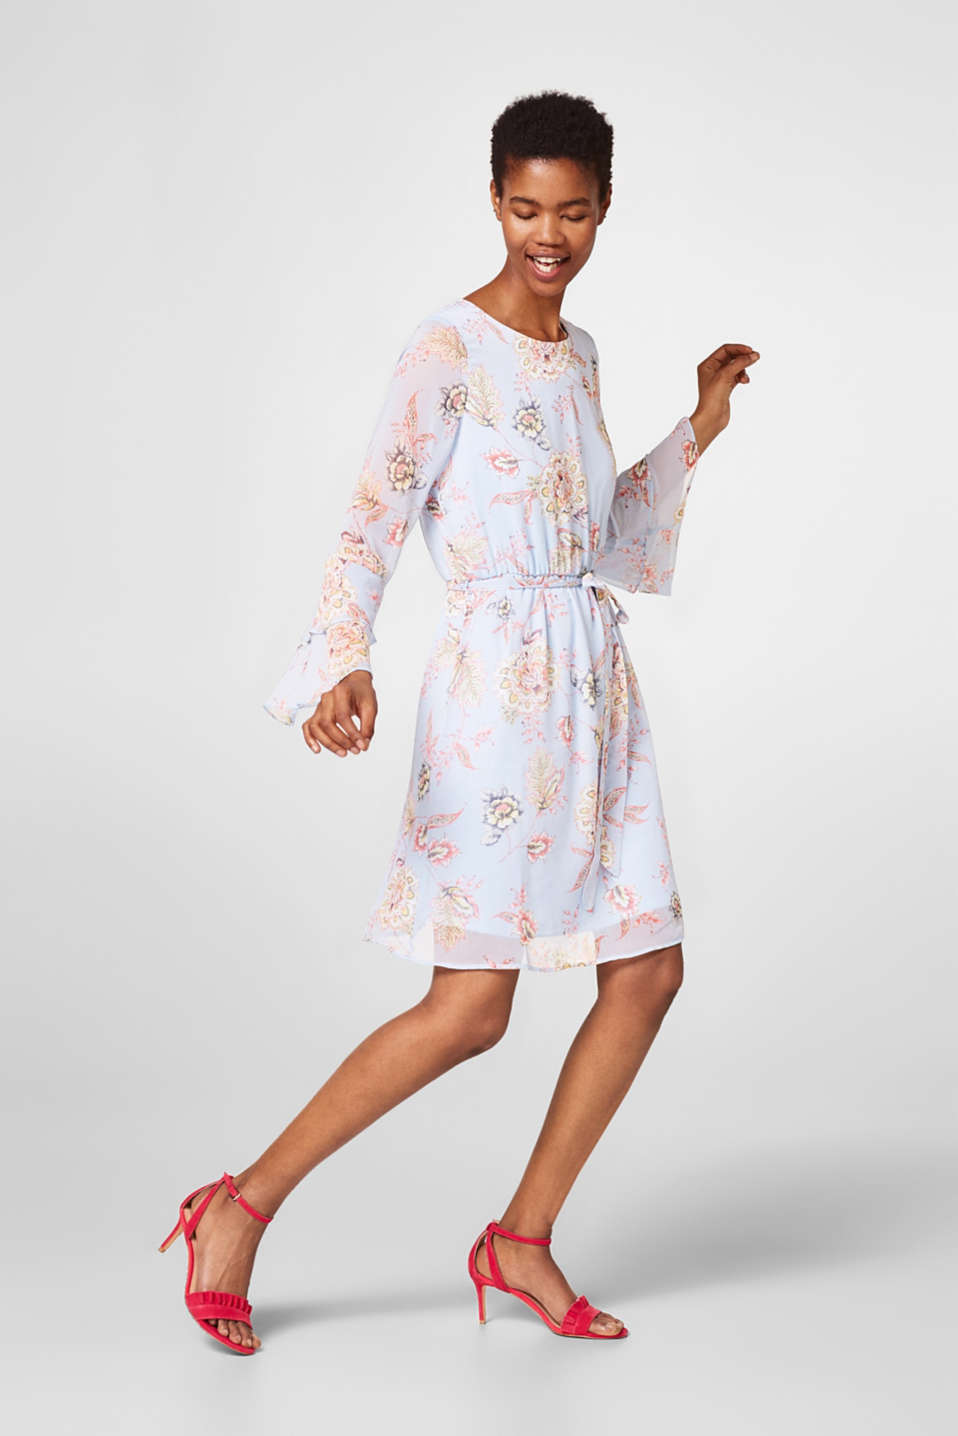 Flowery dress in delicate crinkle chiffon